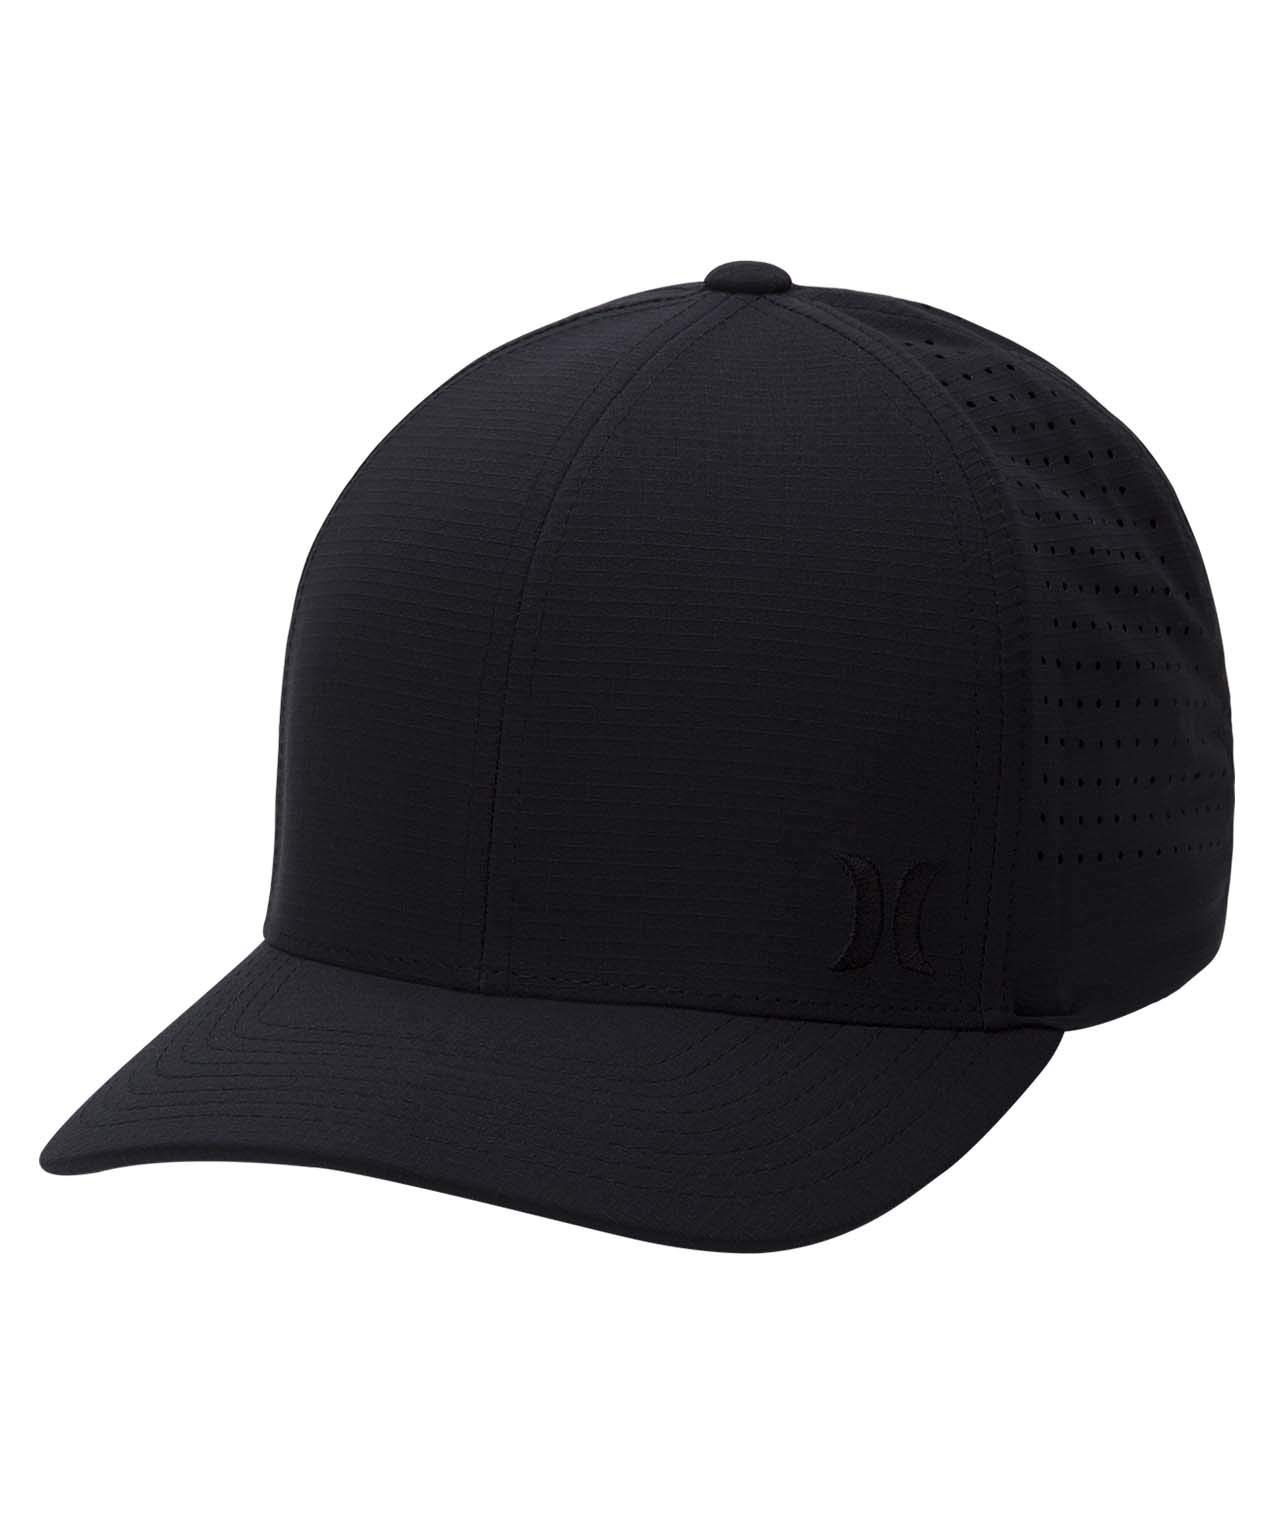 Hurley Men's Phantom Ripstop Curved Bill Baseball Cap, Black, L-XL